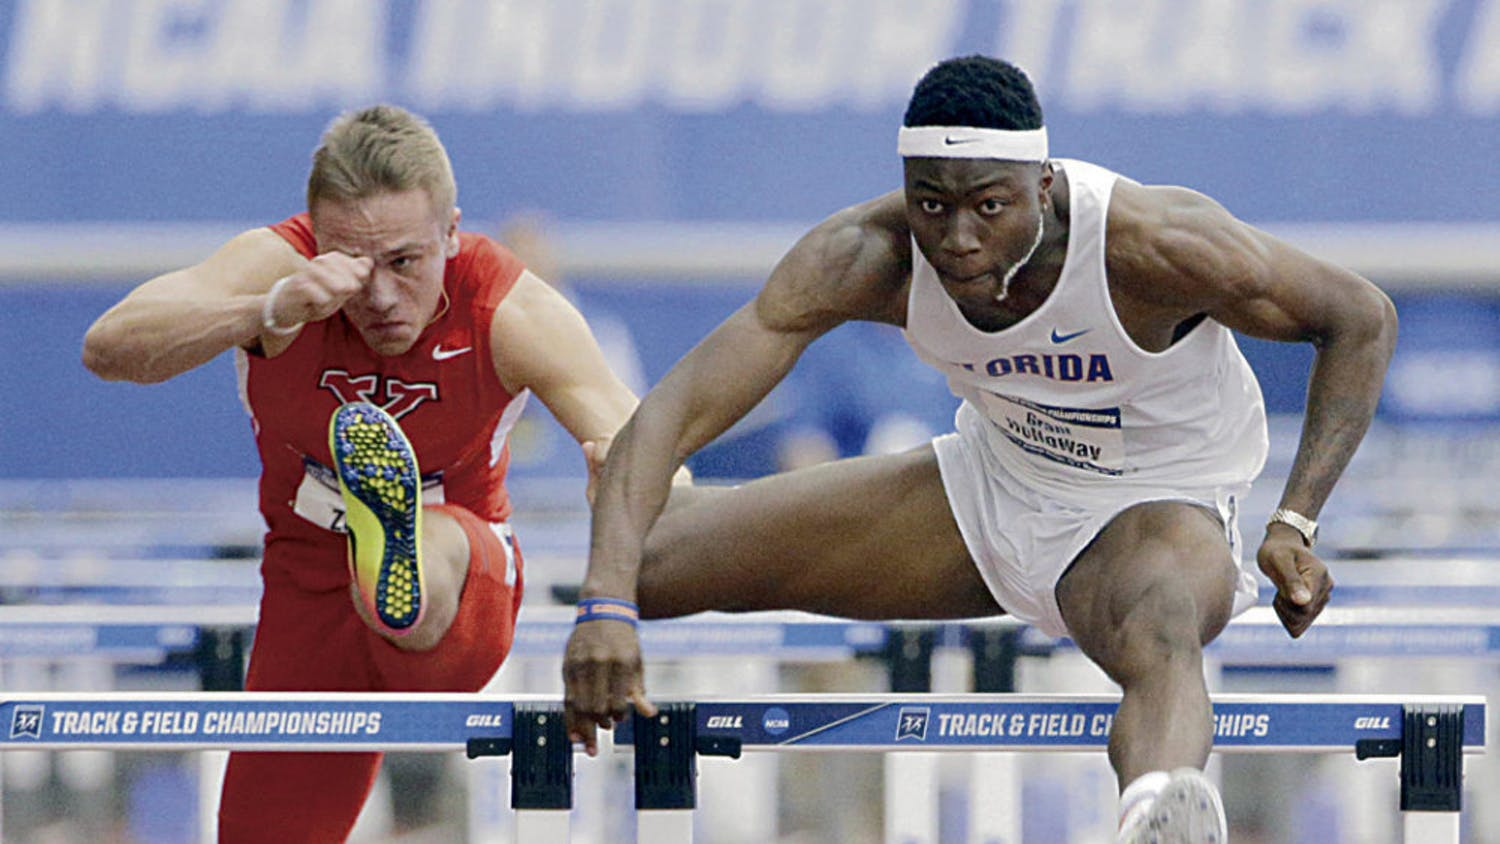 Sophomore hurdler Grant Holloway was one of the many UF track and field athletes who were named All-Americans.